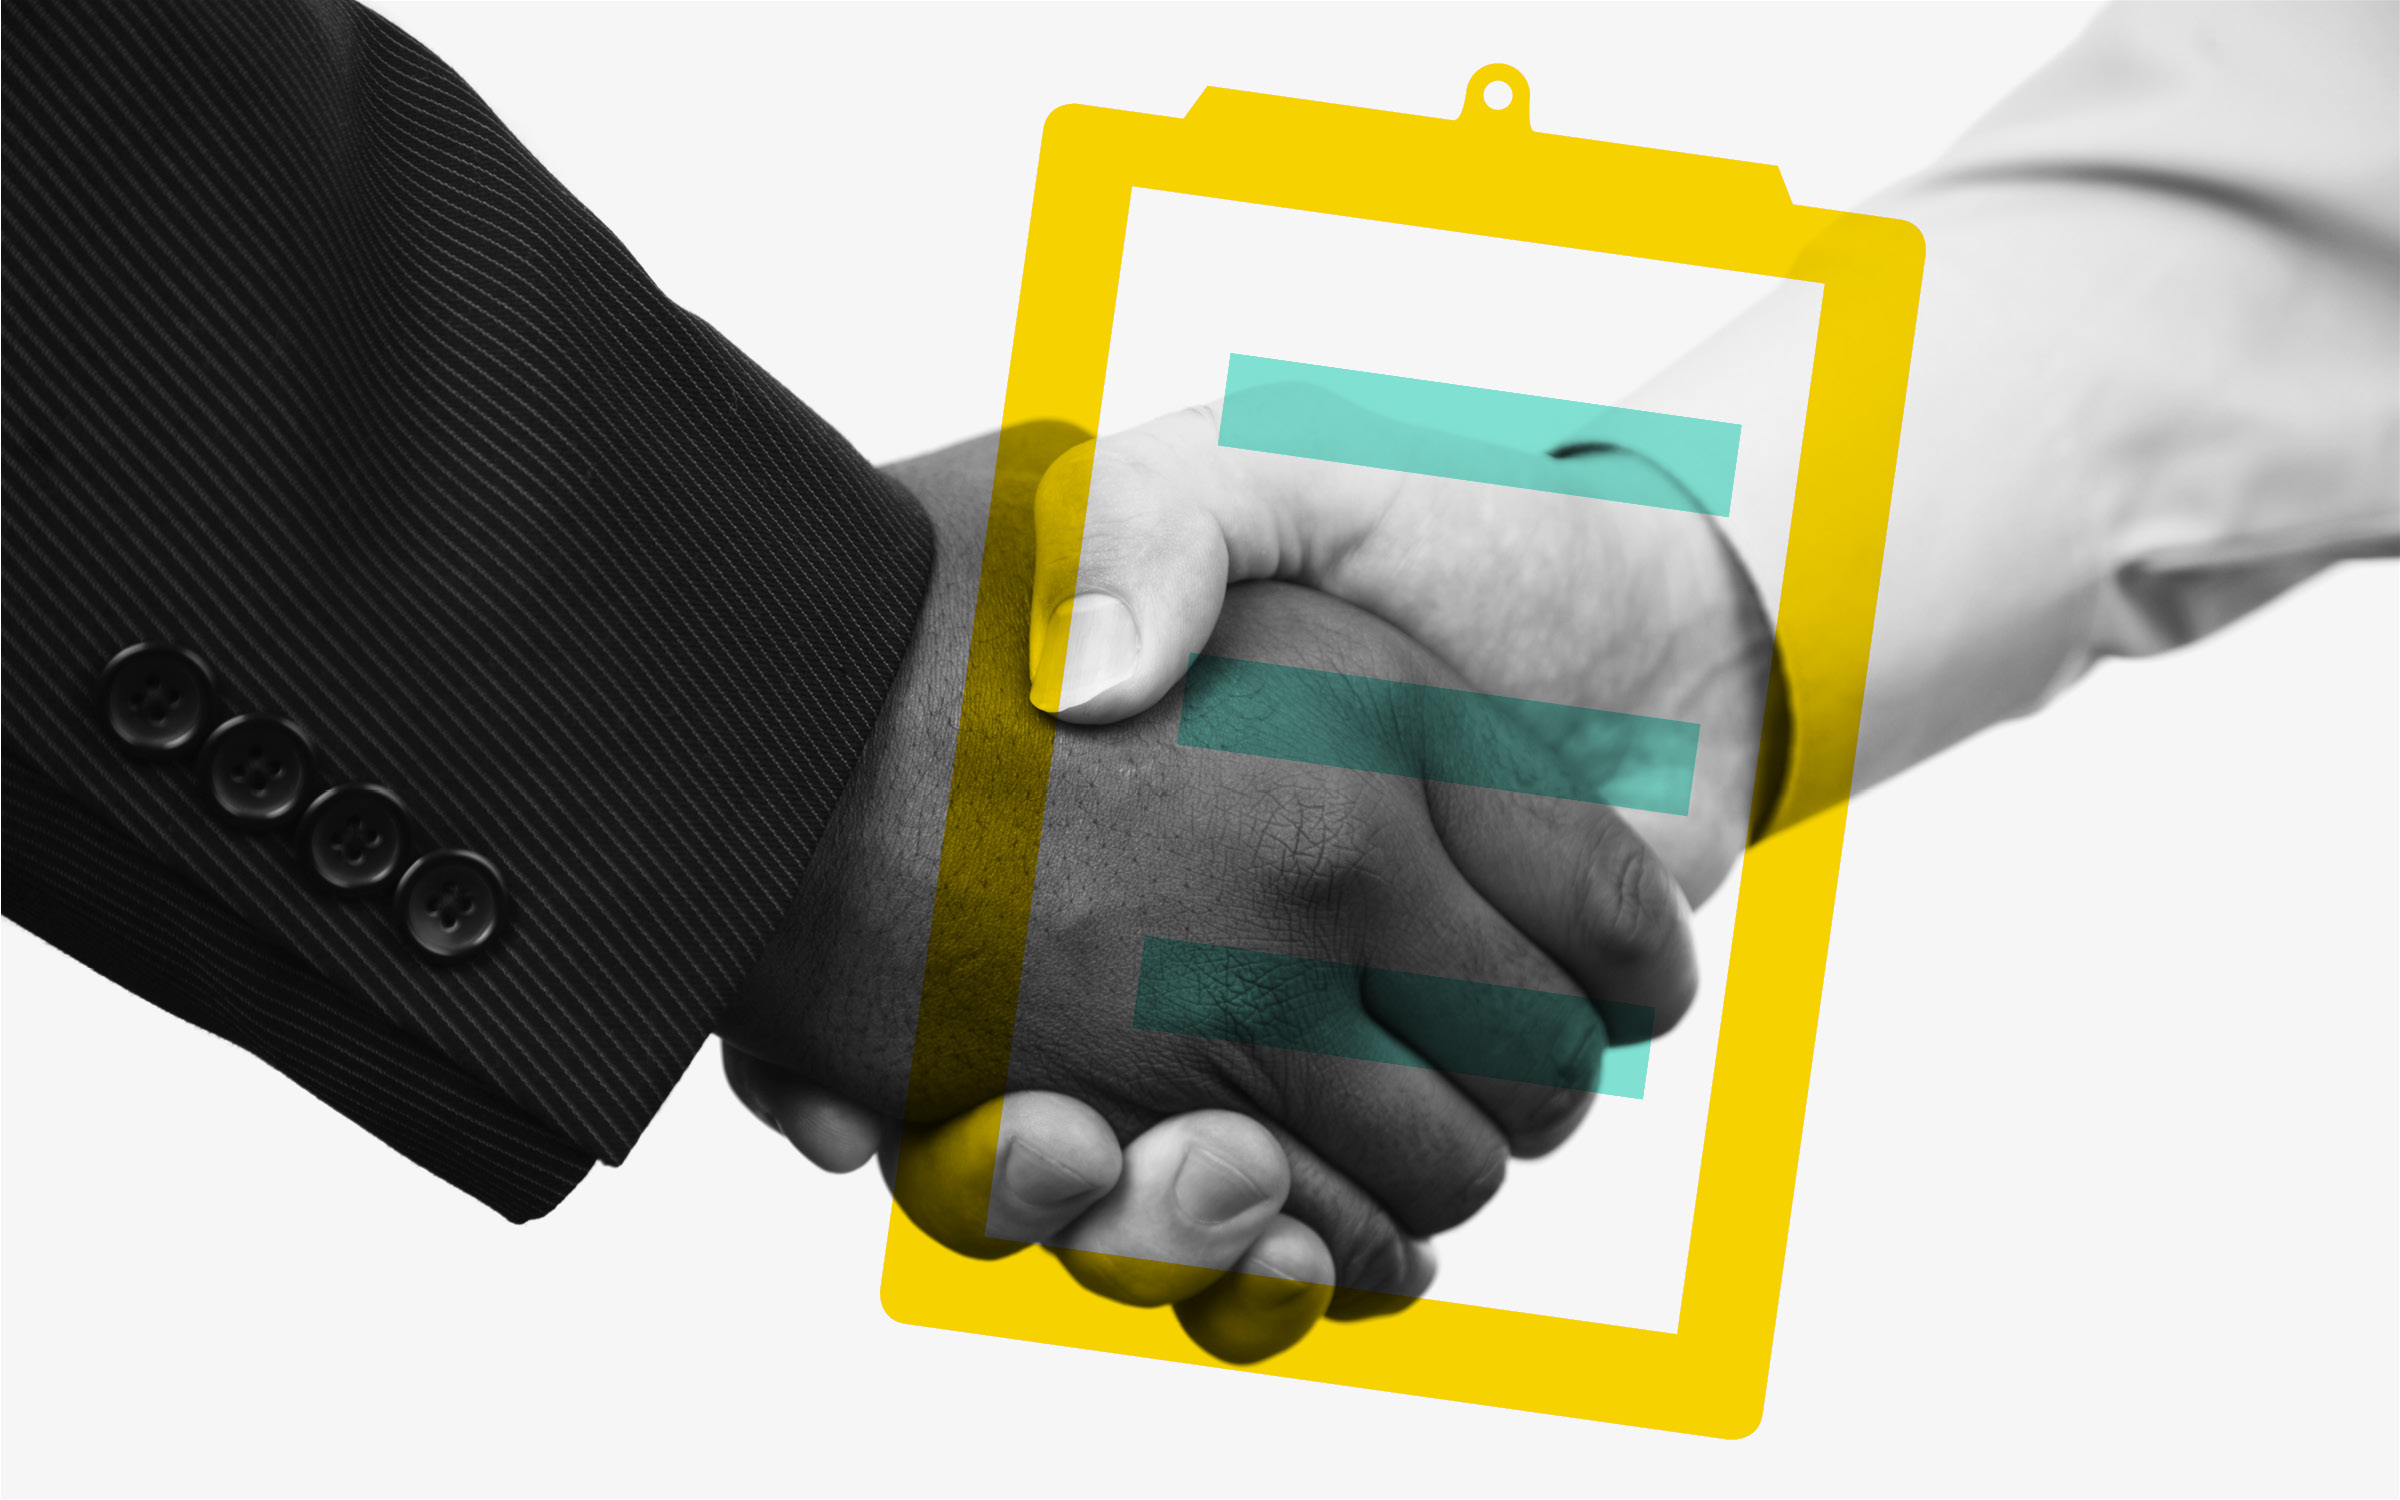 Negotiation Strategies For Professionals: How to Ask for More